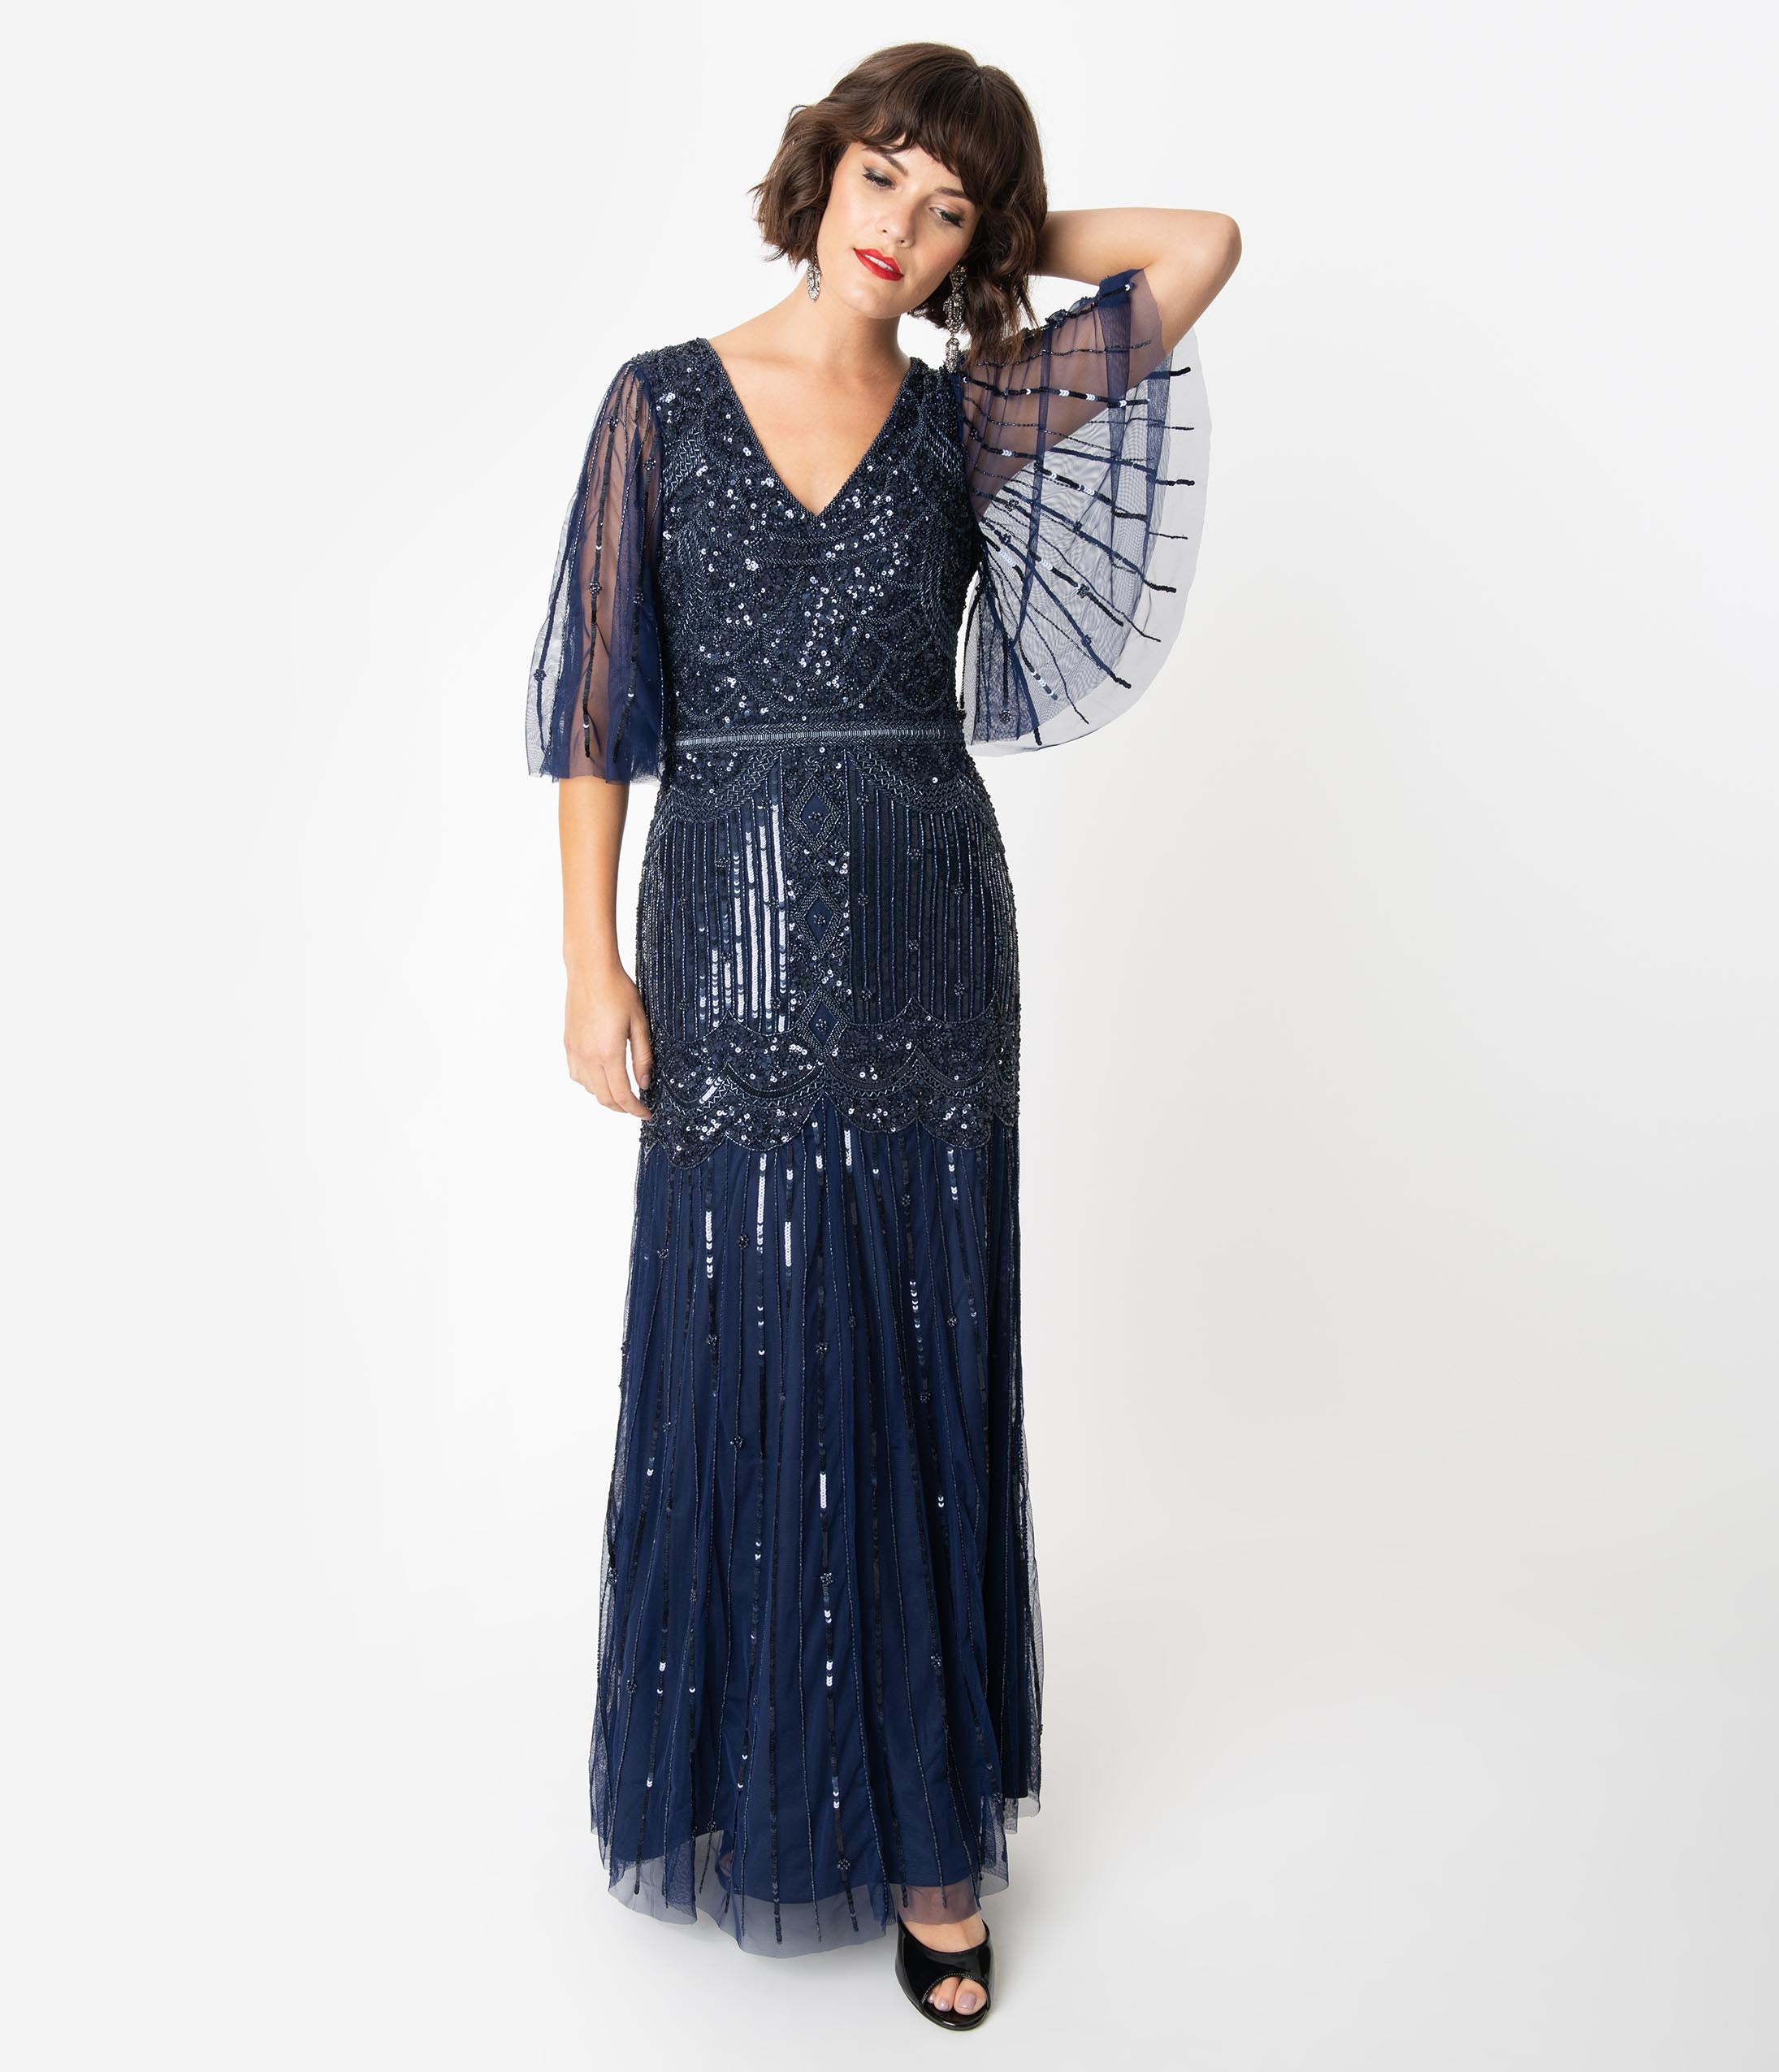 1920s Downton Abbey Dresses Navy Blue Sequin  Beaded Angel Sleeve Bettina Long Flapper Dress $268.00 AT vintagedancer.com